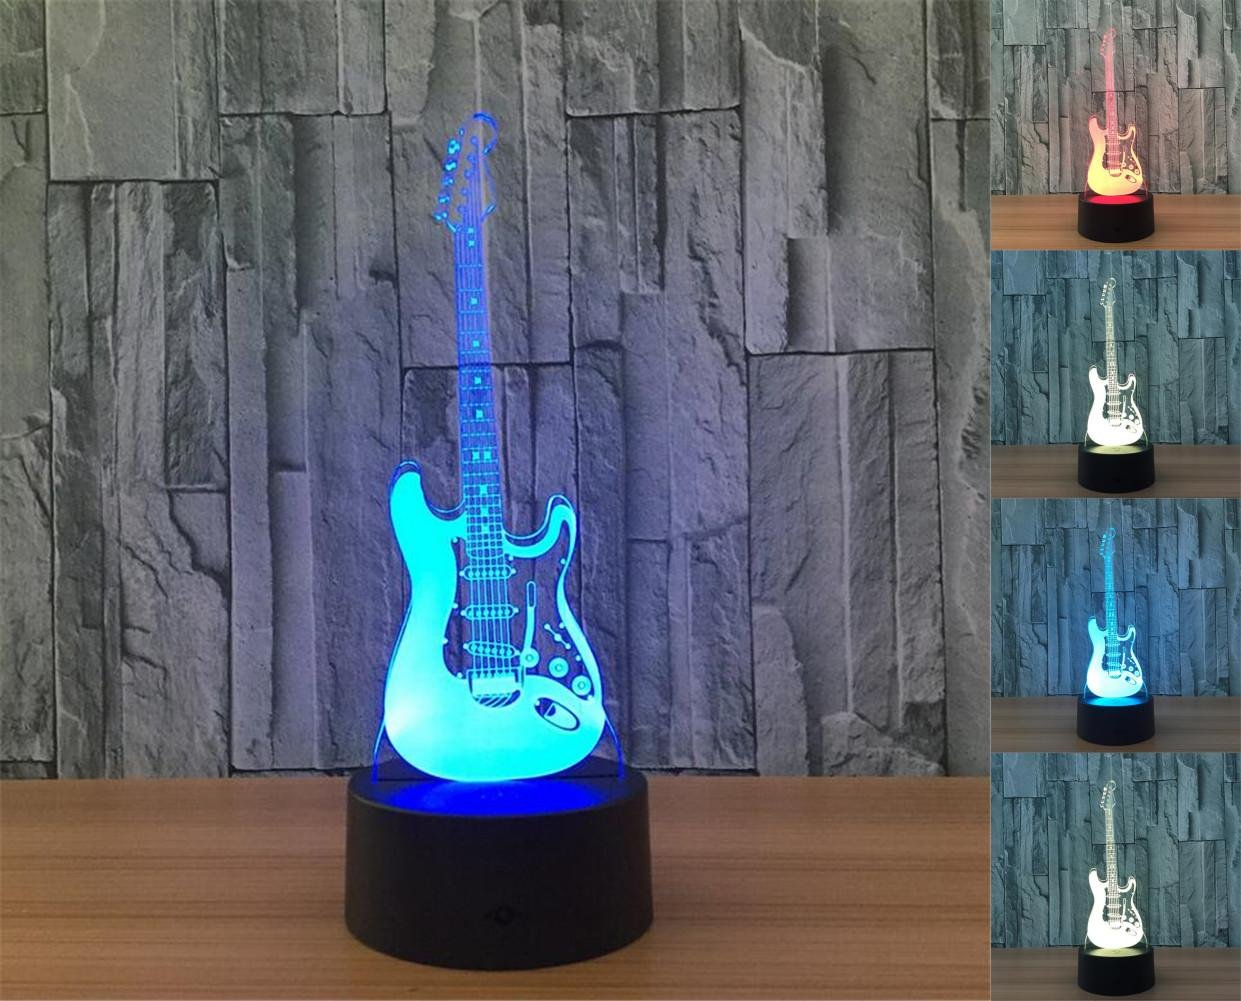 W-ONLY YOU-J LED Guitar 3D Lights Colorful remote touch creative products Gift table lamp LED light Night light